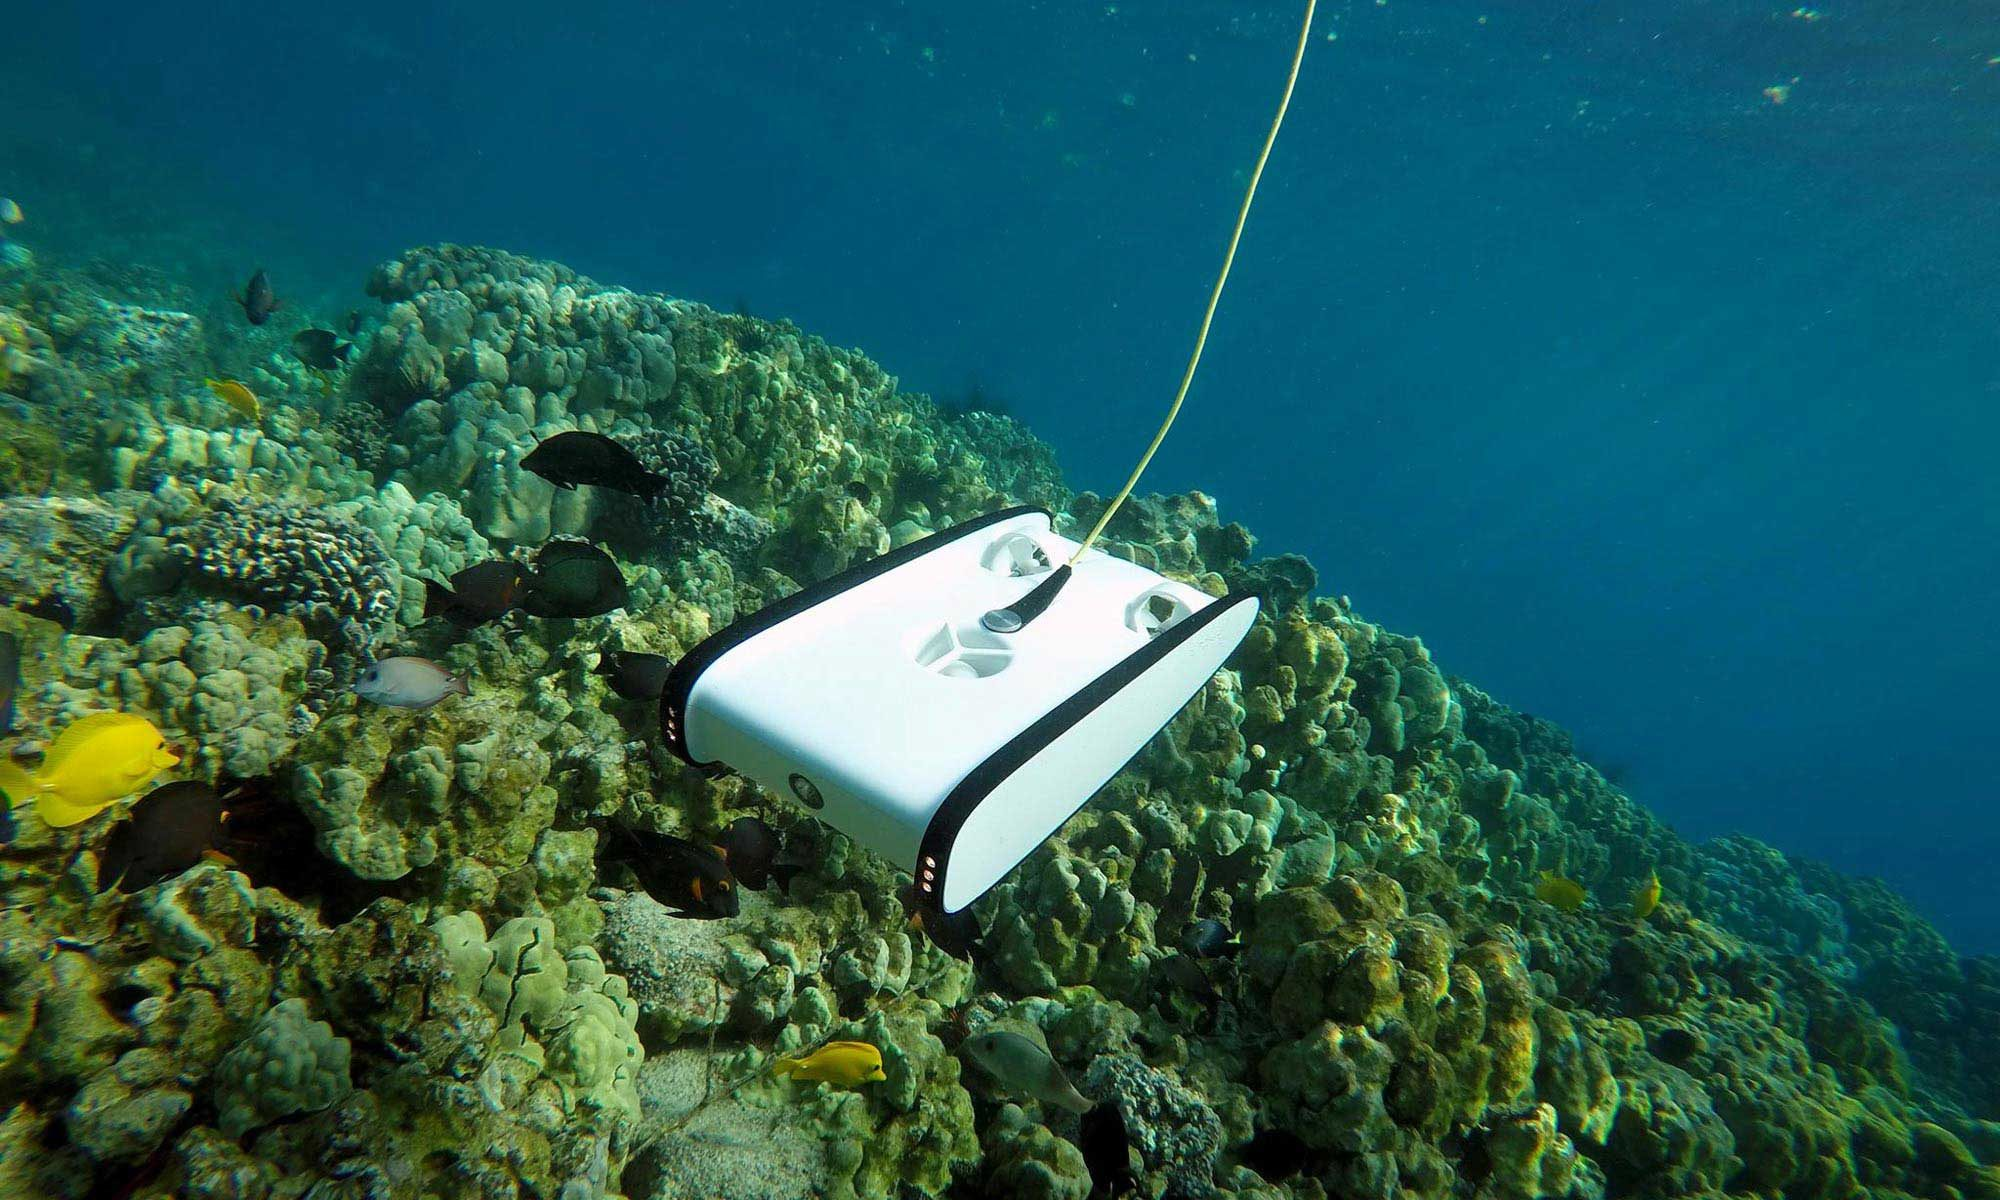 OpenROV Trident exploring coral.